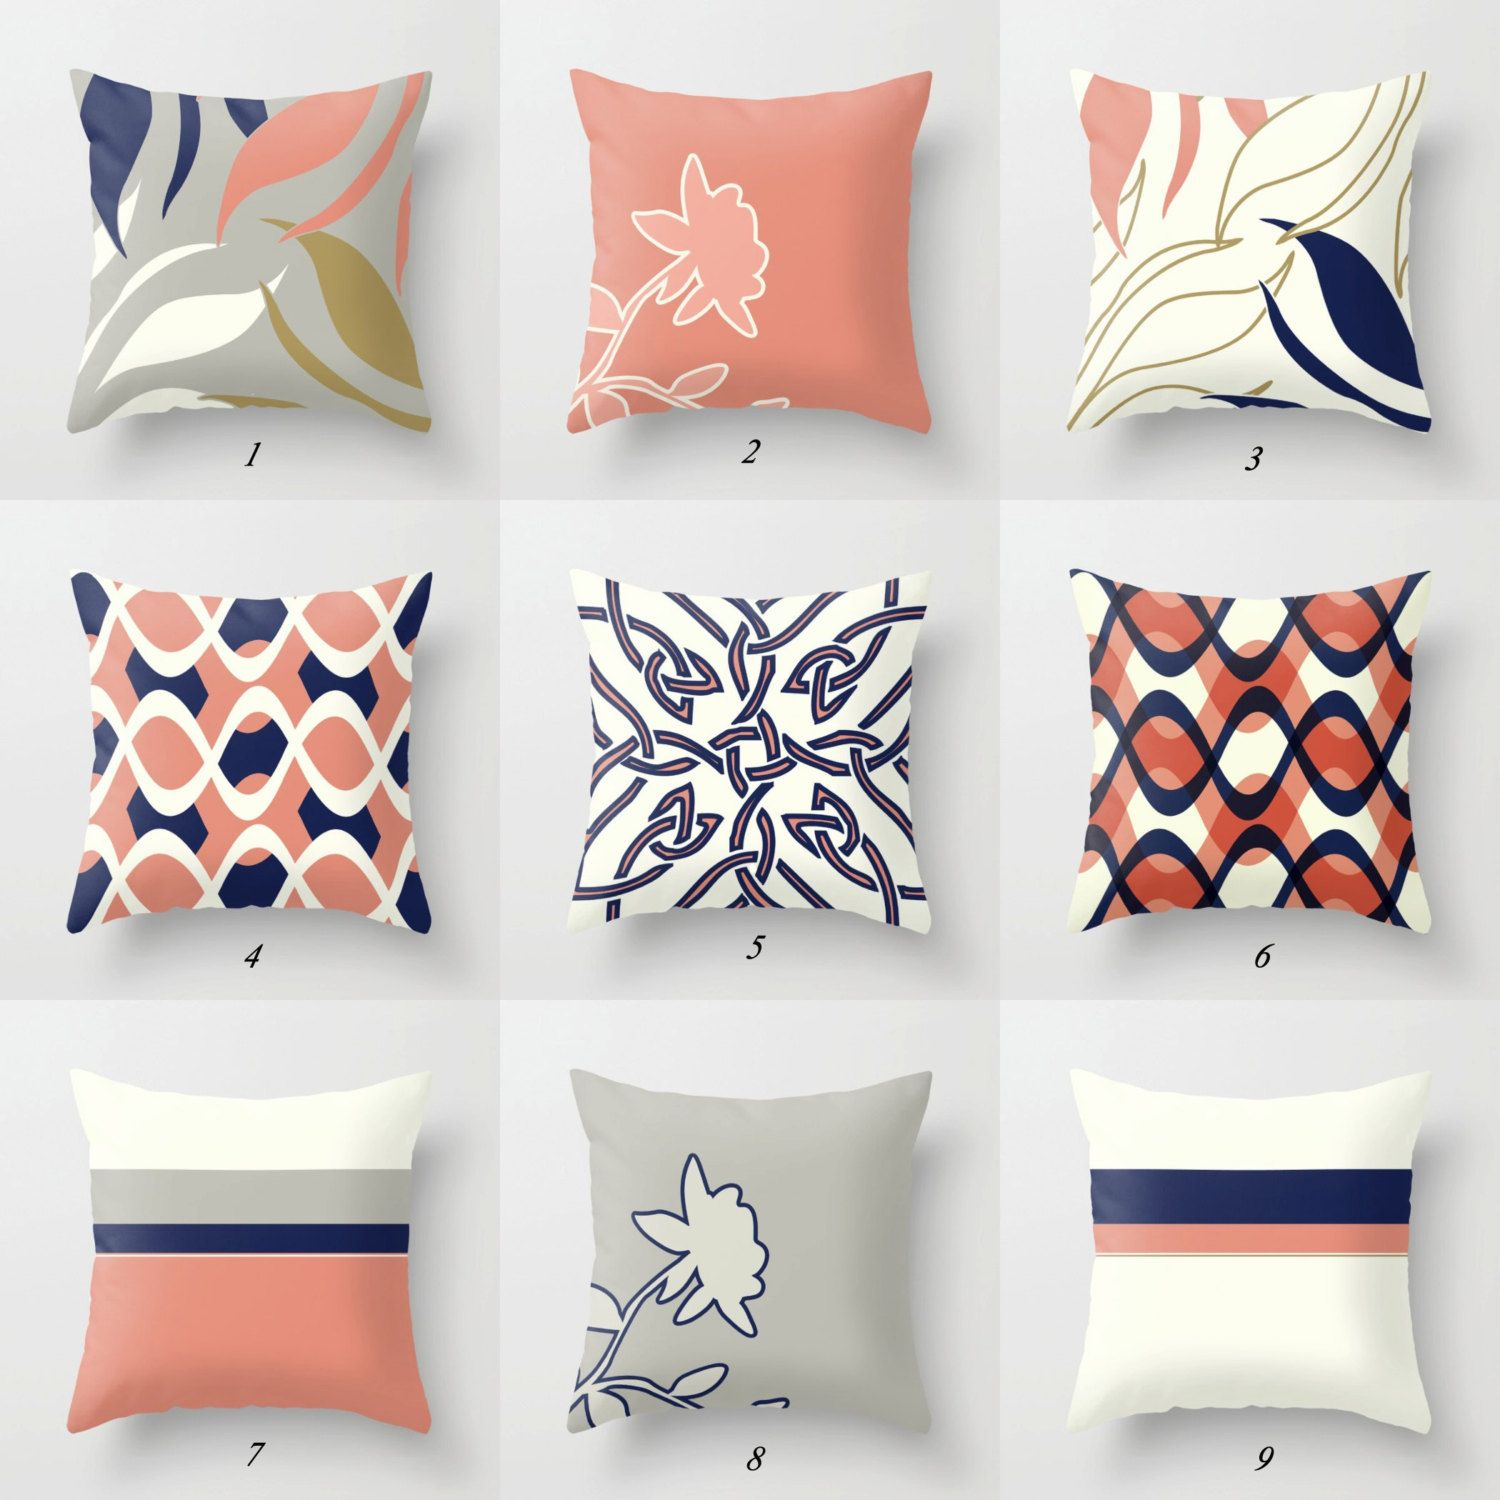 Throw Pillow Covers Decorative Pillows Pink Gray Navy Blue Pillows Pink Throw Pillow Geometric Cushion Rectangular Pillow Lumbar Pillow Blue And White Pillows Blue Throw Pillows Grey Throw Pillows